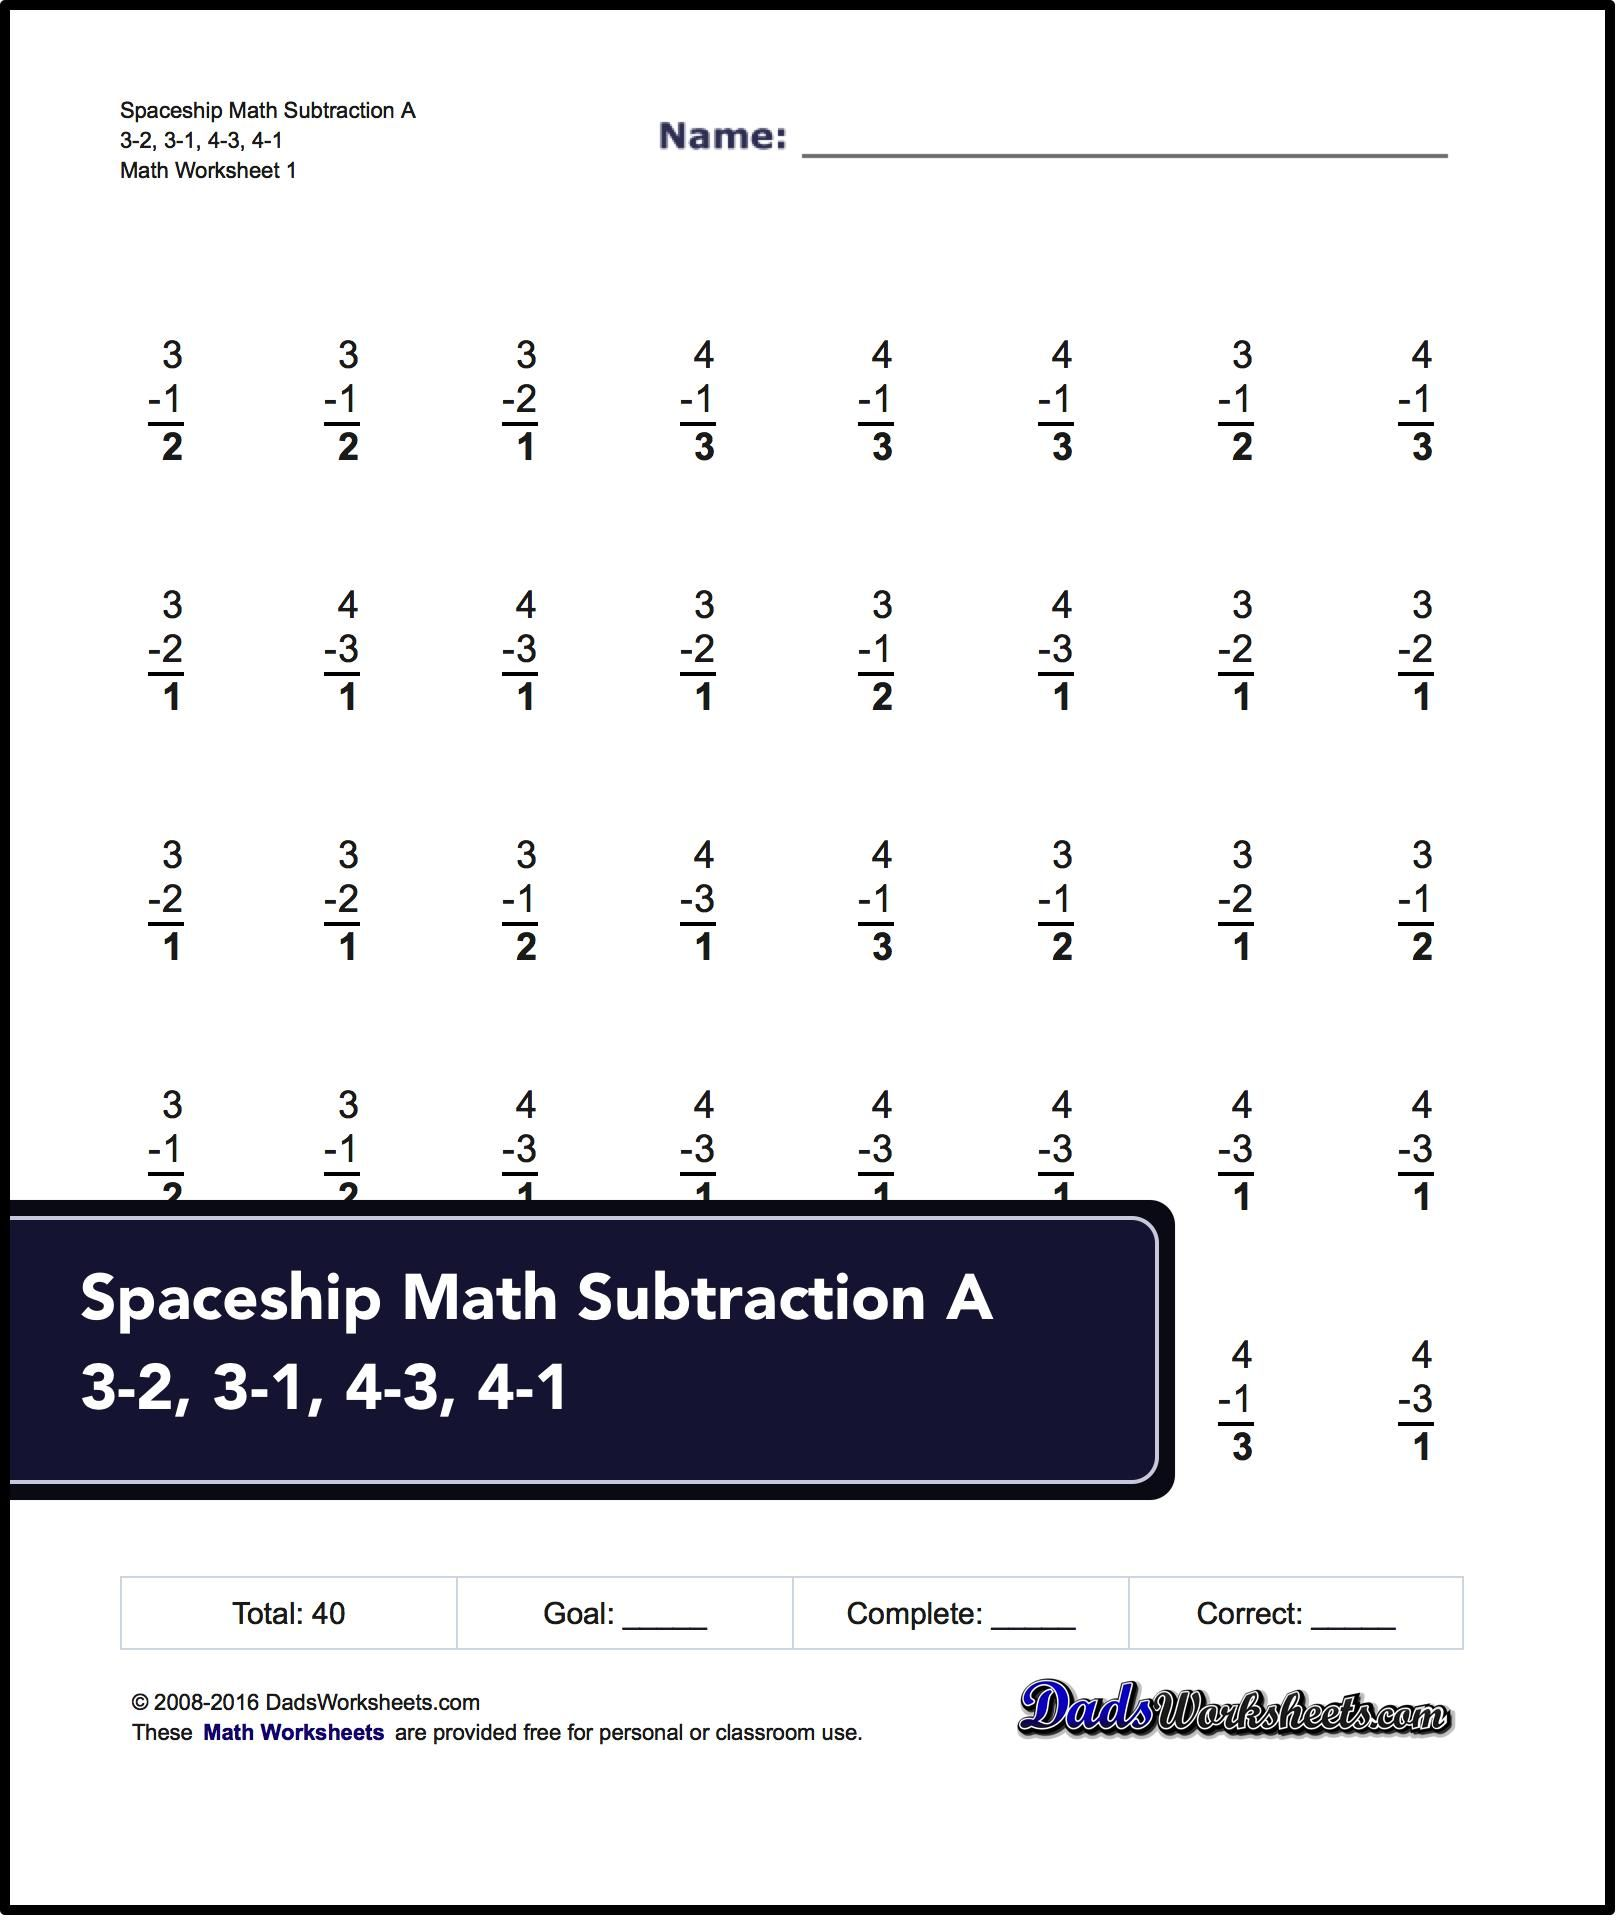 Subtraction Worksheets For One Minute Timed Subtraction Facts Tests Great For Classroom Or